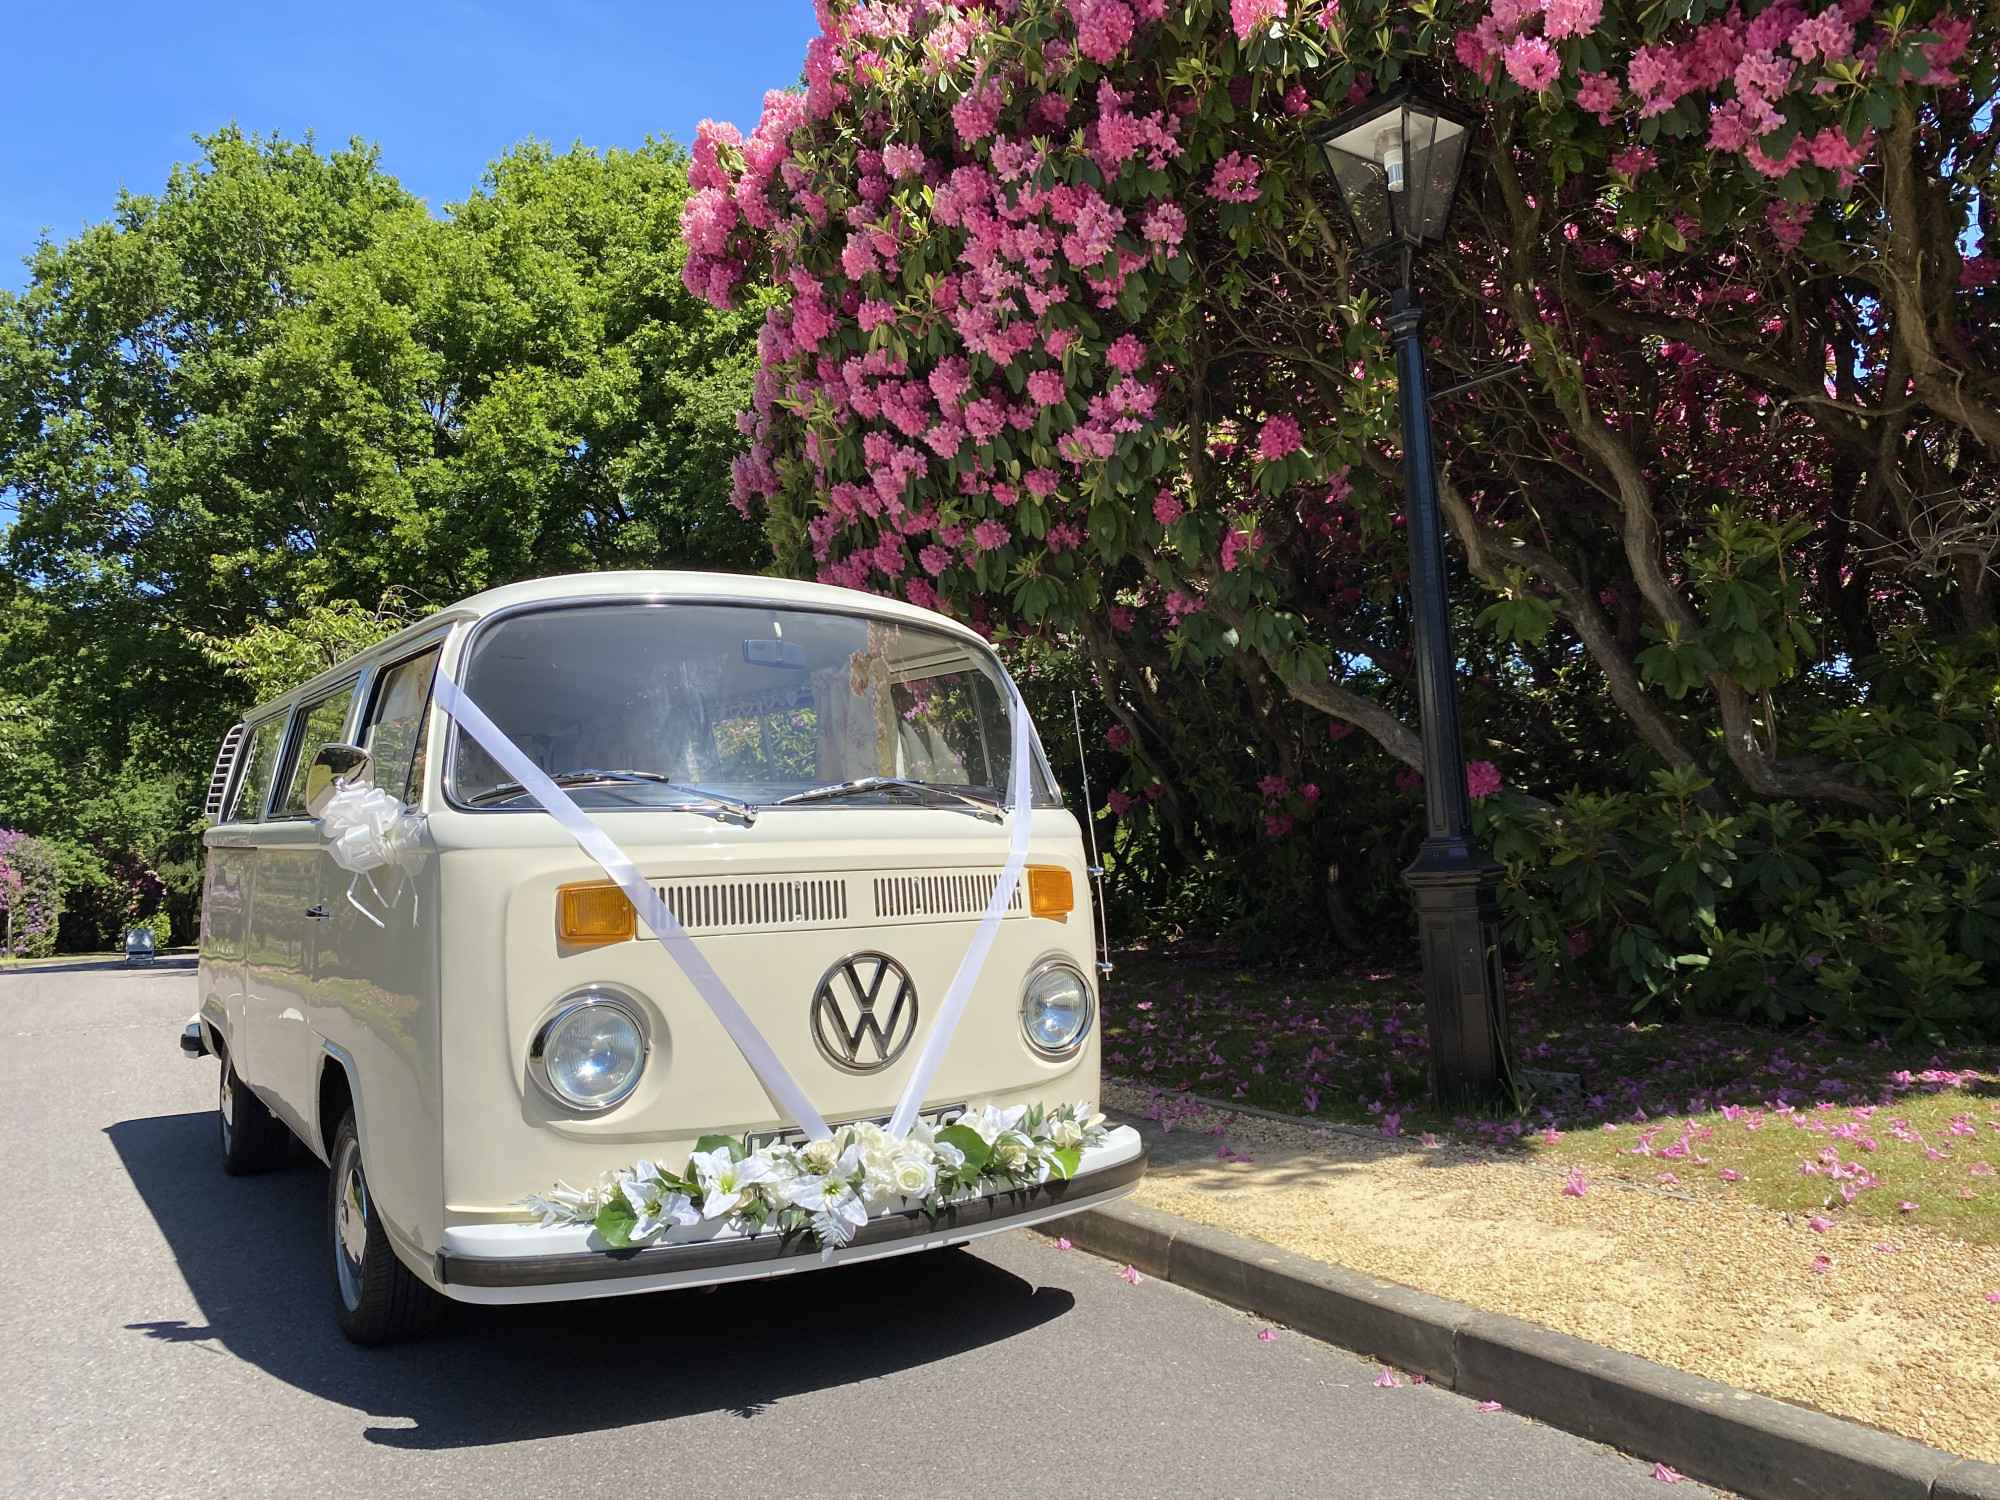 A VW T2 Classic Campervan called Bella and Bella for hire in warfield, Berkshire